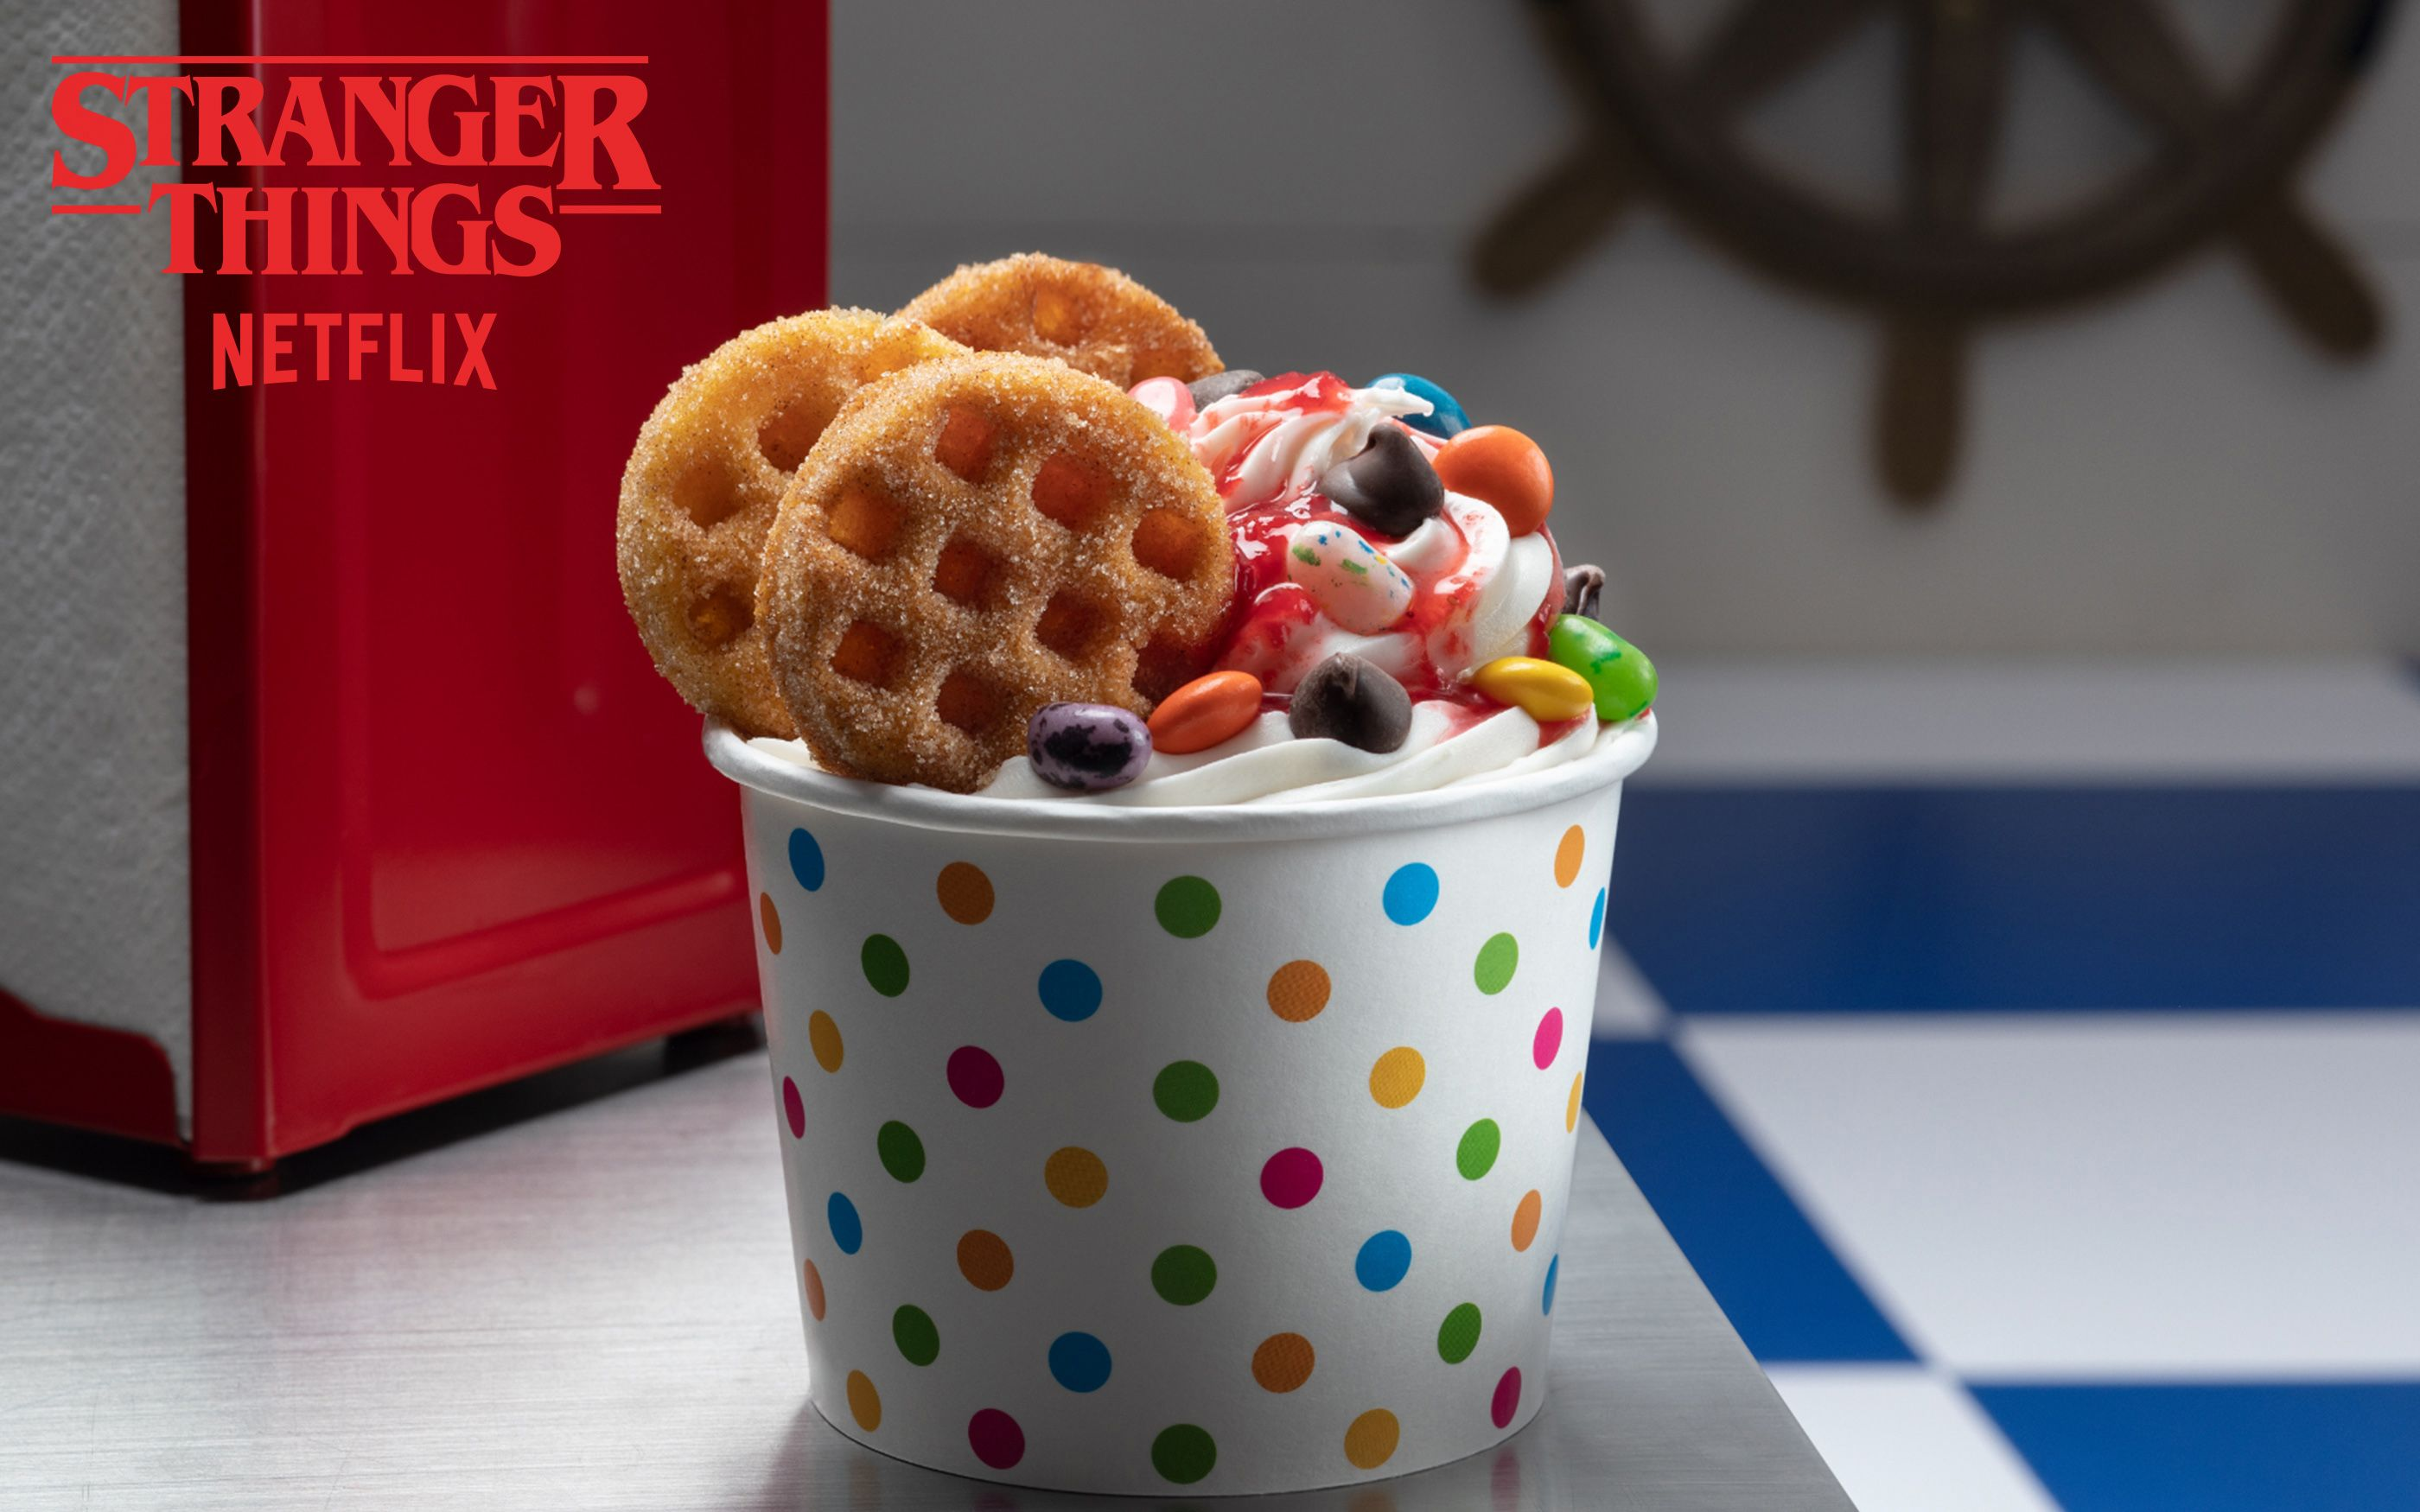 Halloween Horror Nights Has A 'Stranger Things' Waffle Sundae And A Burger Filled With Hot Cheetos